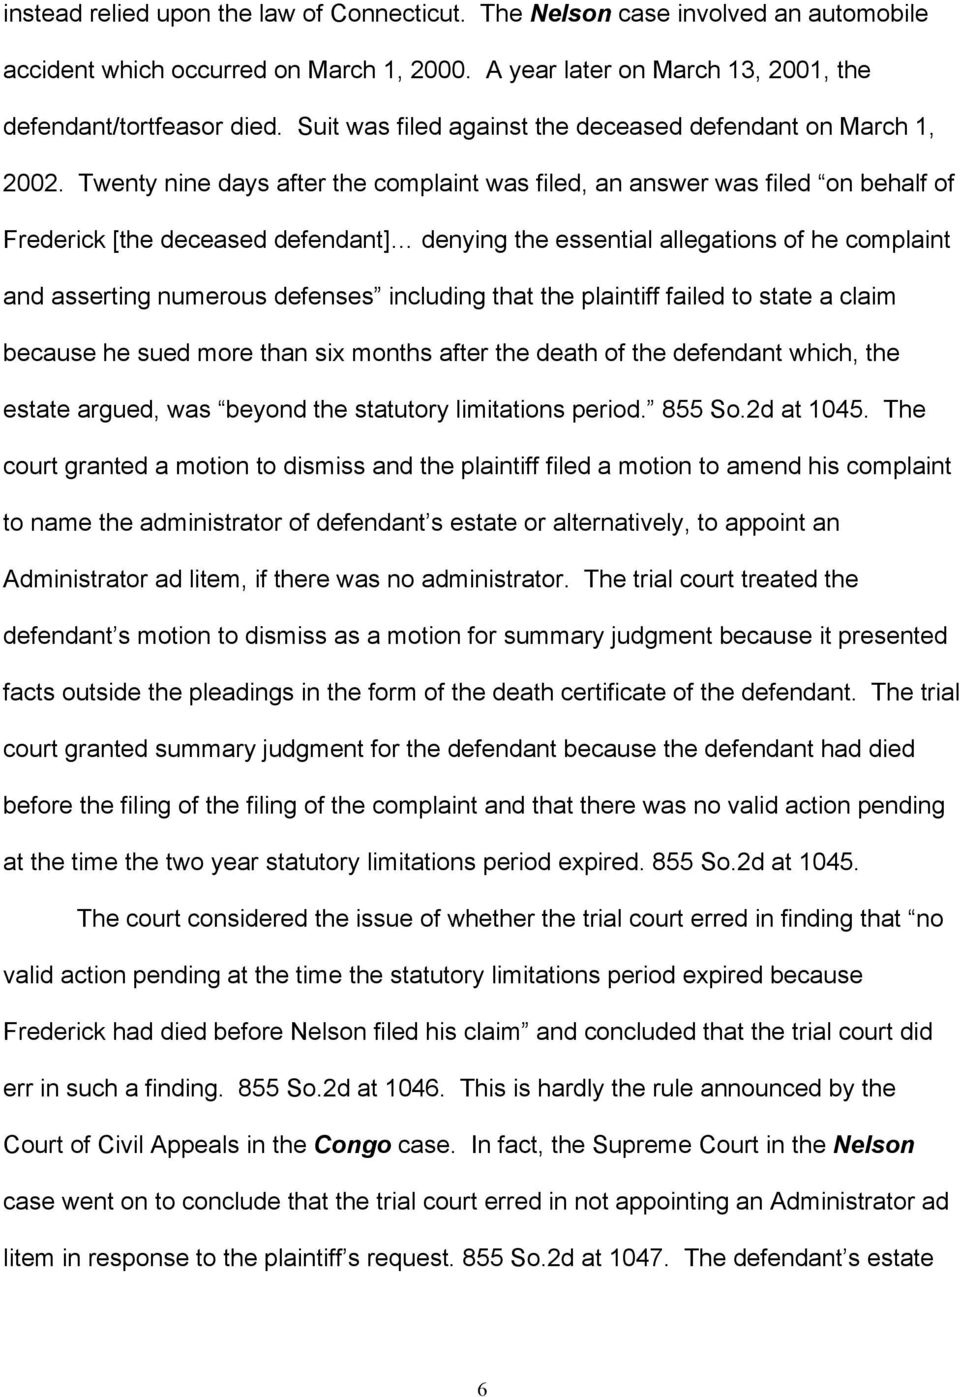 Twenty nine days after the complaint was filed, an answer was filed on behalf of Frederick [the deceased defendant] denying the essential allegations of he complaint and asserting numerous defenses